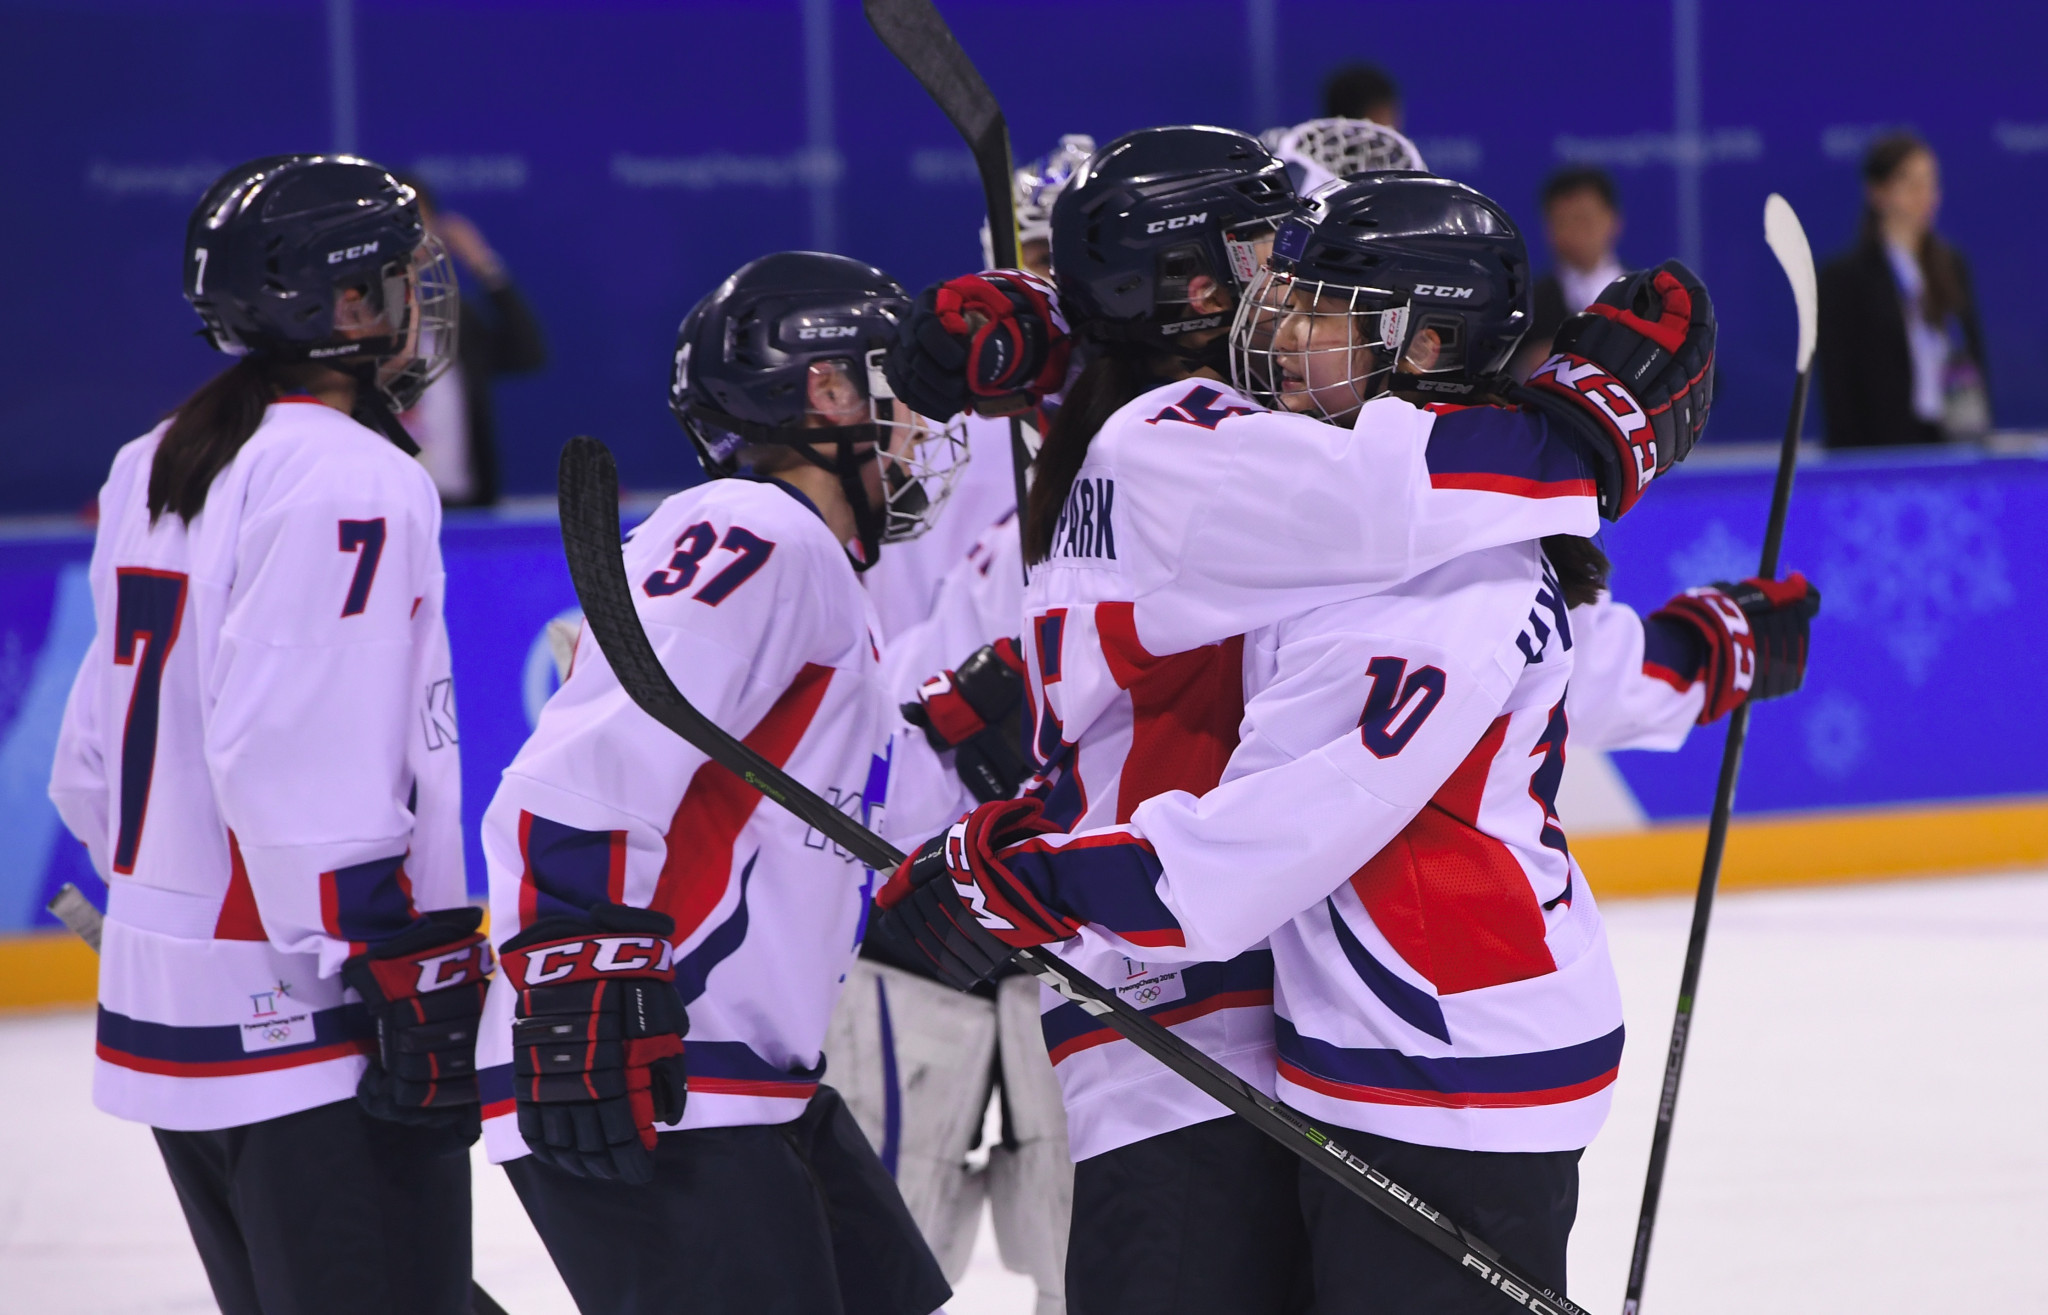 A unified Korean team competed in women's ice hockey competition at the Games ©Getty Images